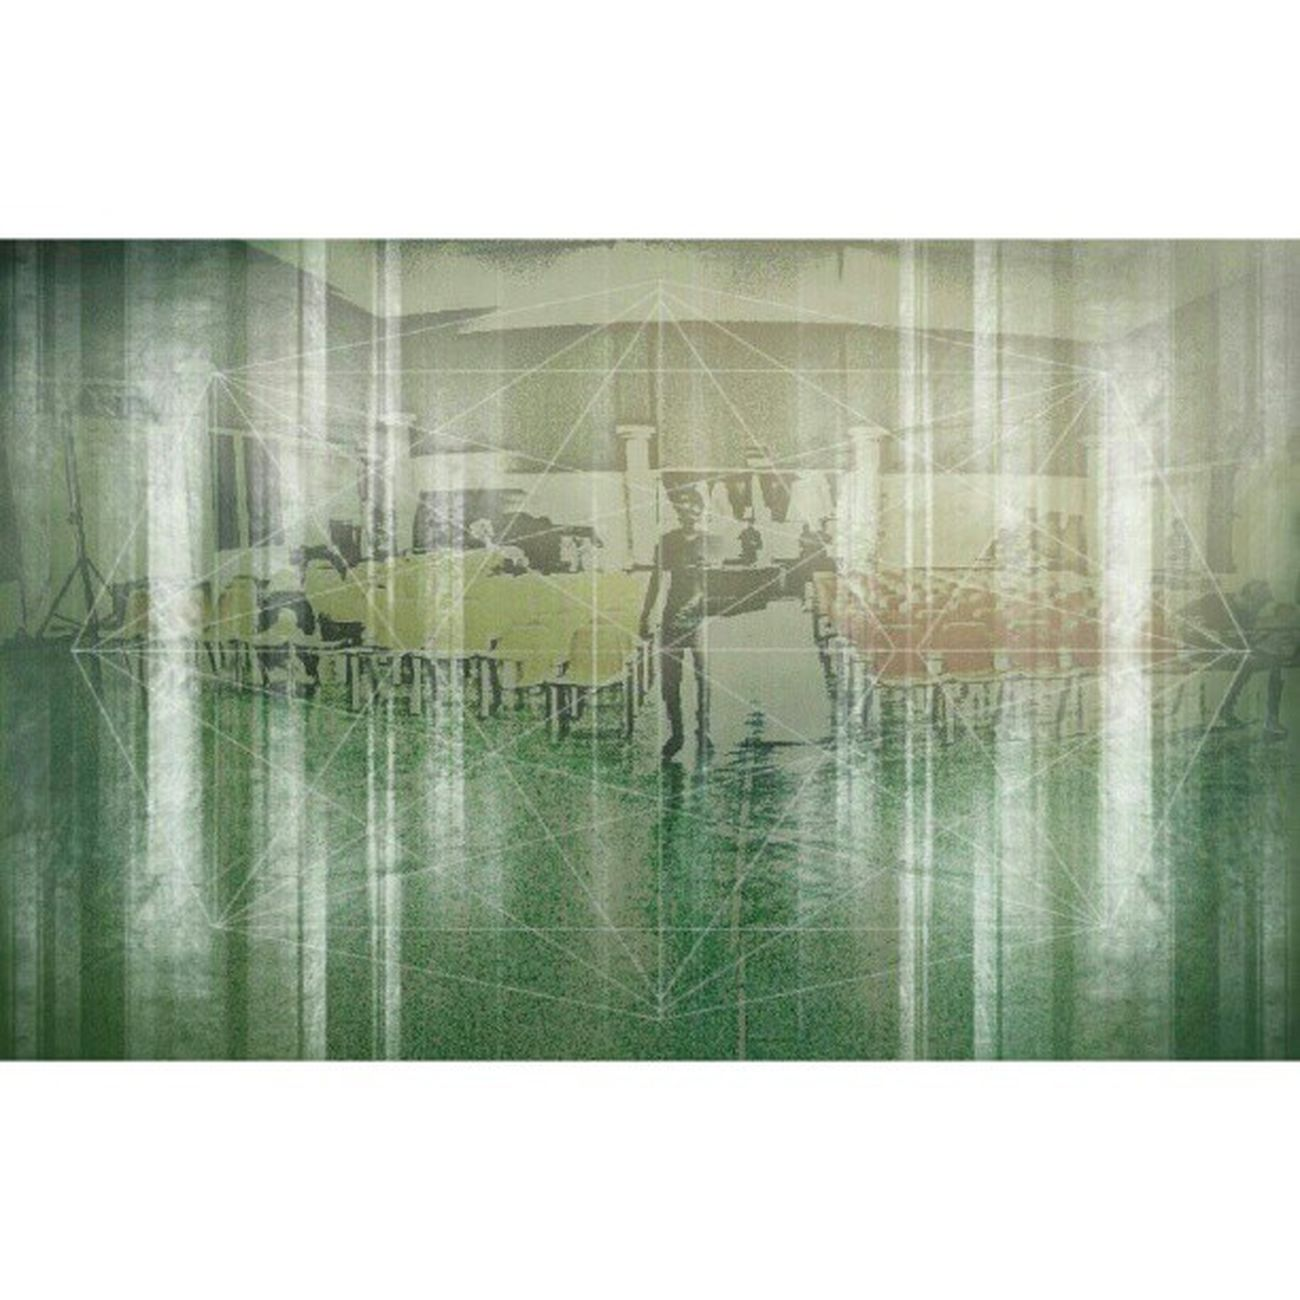 Home #lilphoto #droidedit #photosquarer #snapseed #gatekeepers #church #ndpattern #mextures #impashape #lumiform Church Snapseed DroidEdit Mextures Lumiform Ndpattern Photosquarer Impashape Lilphoto Gatekeepers